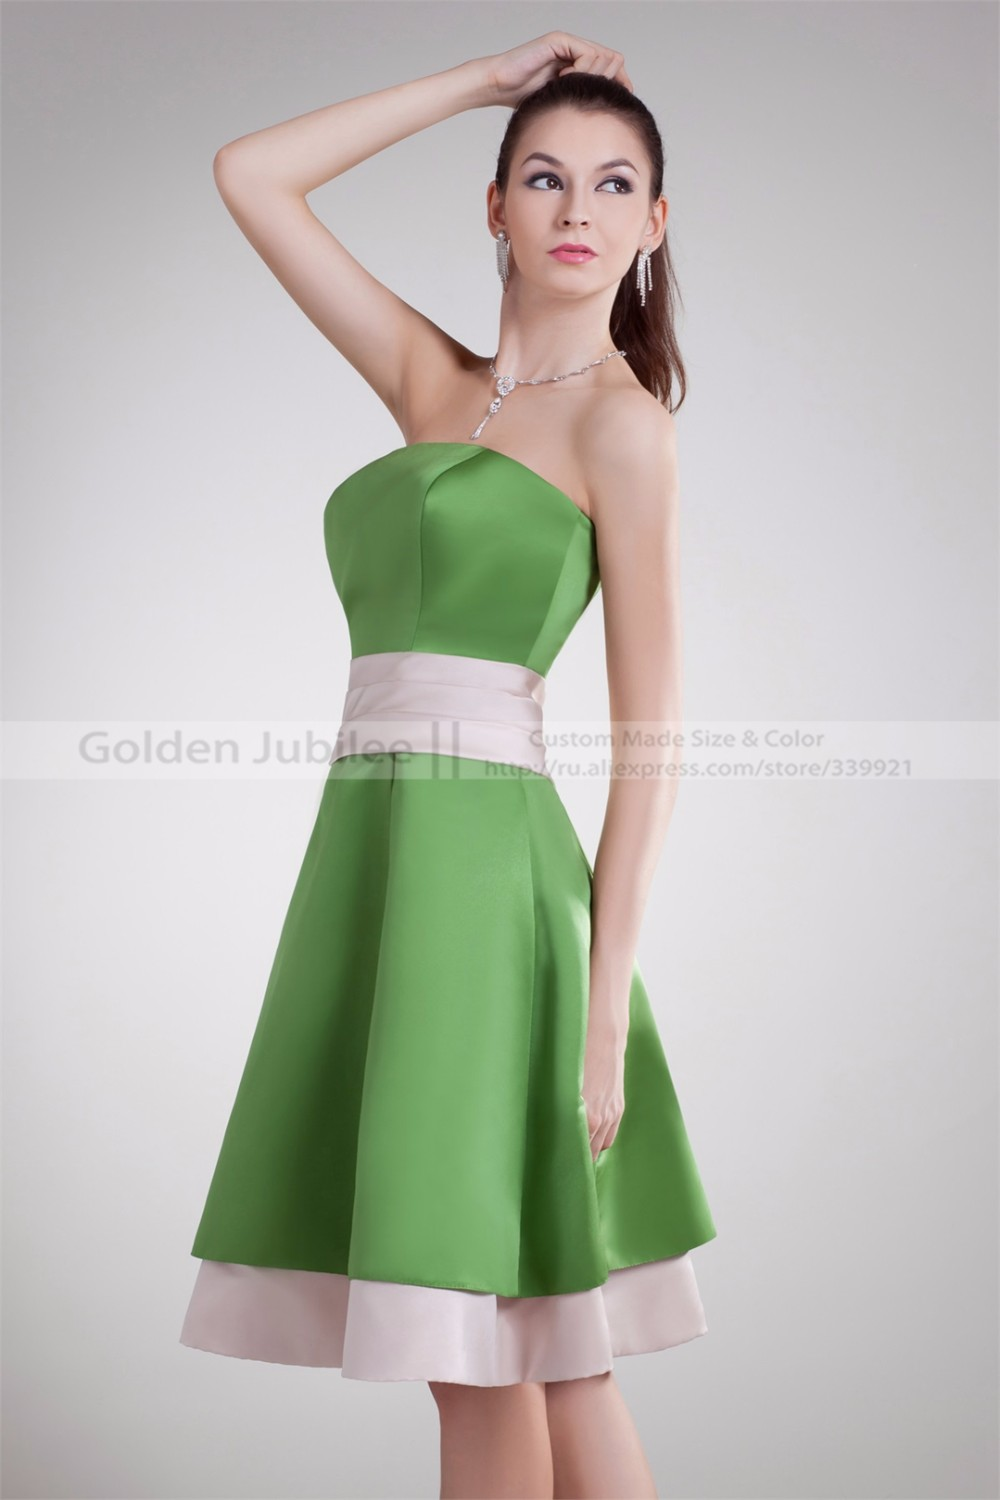 Satin-Strapless-Sleeveless-A-Line-Tiered-Special-Occasion-Dresses-23251-85268